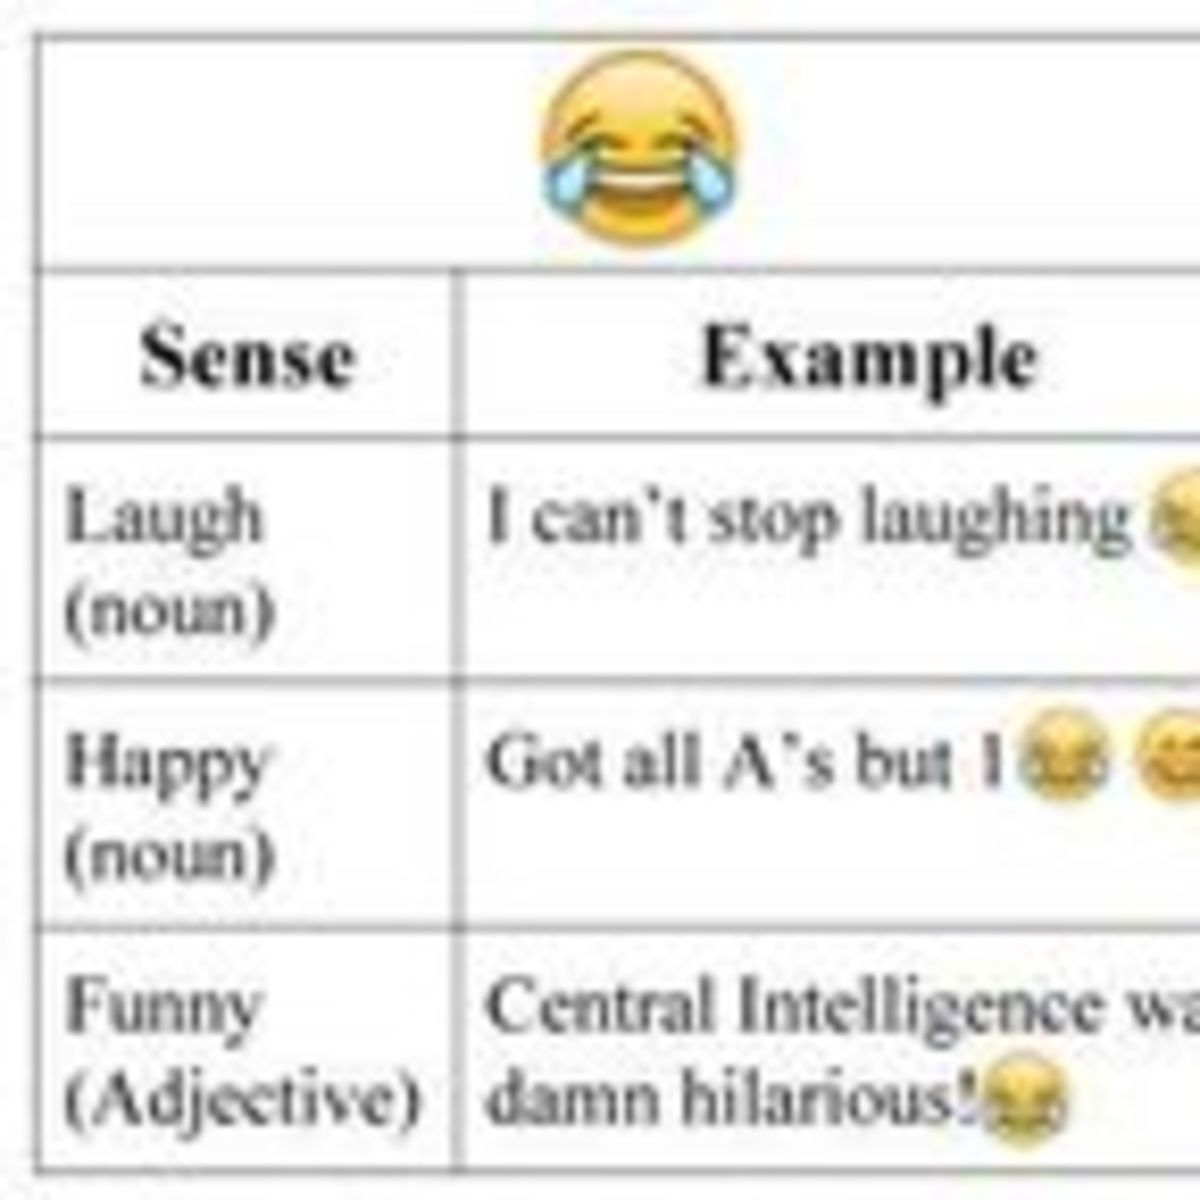 Do You Know What That Emoji Means? | Psychology Today